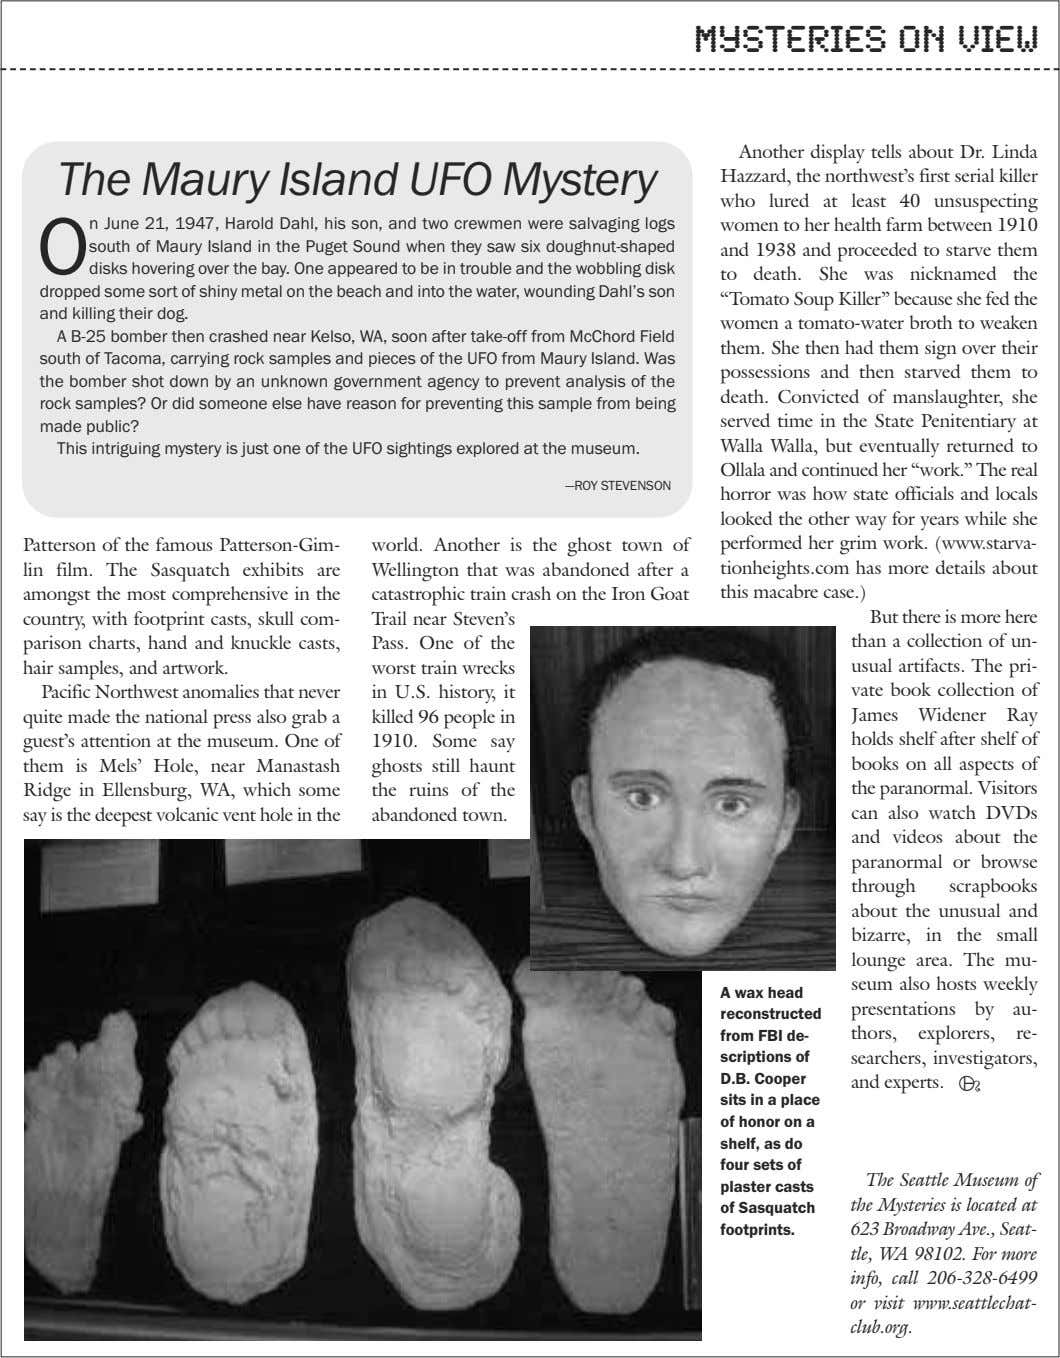 Mysteries on View The Maury Island UFO Mystery O n June 21, 1947, Harold Dahl,